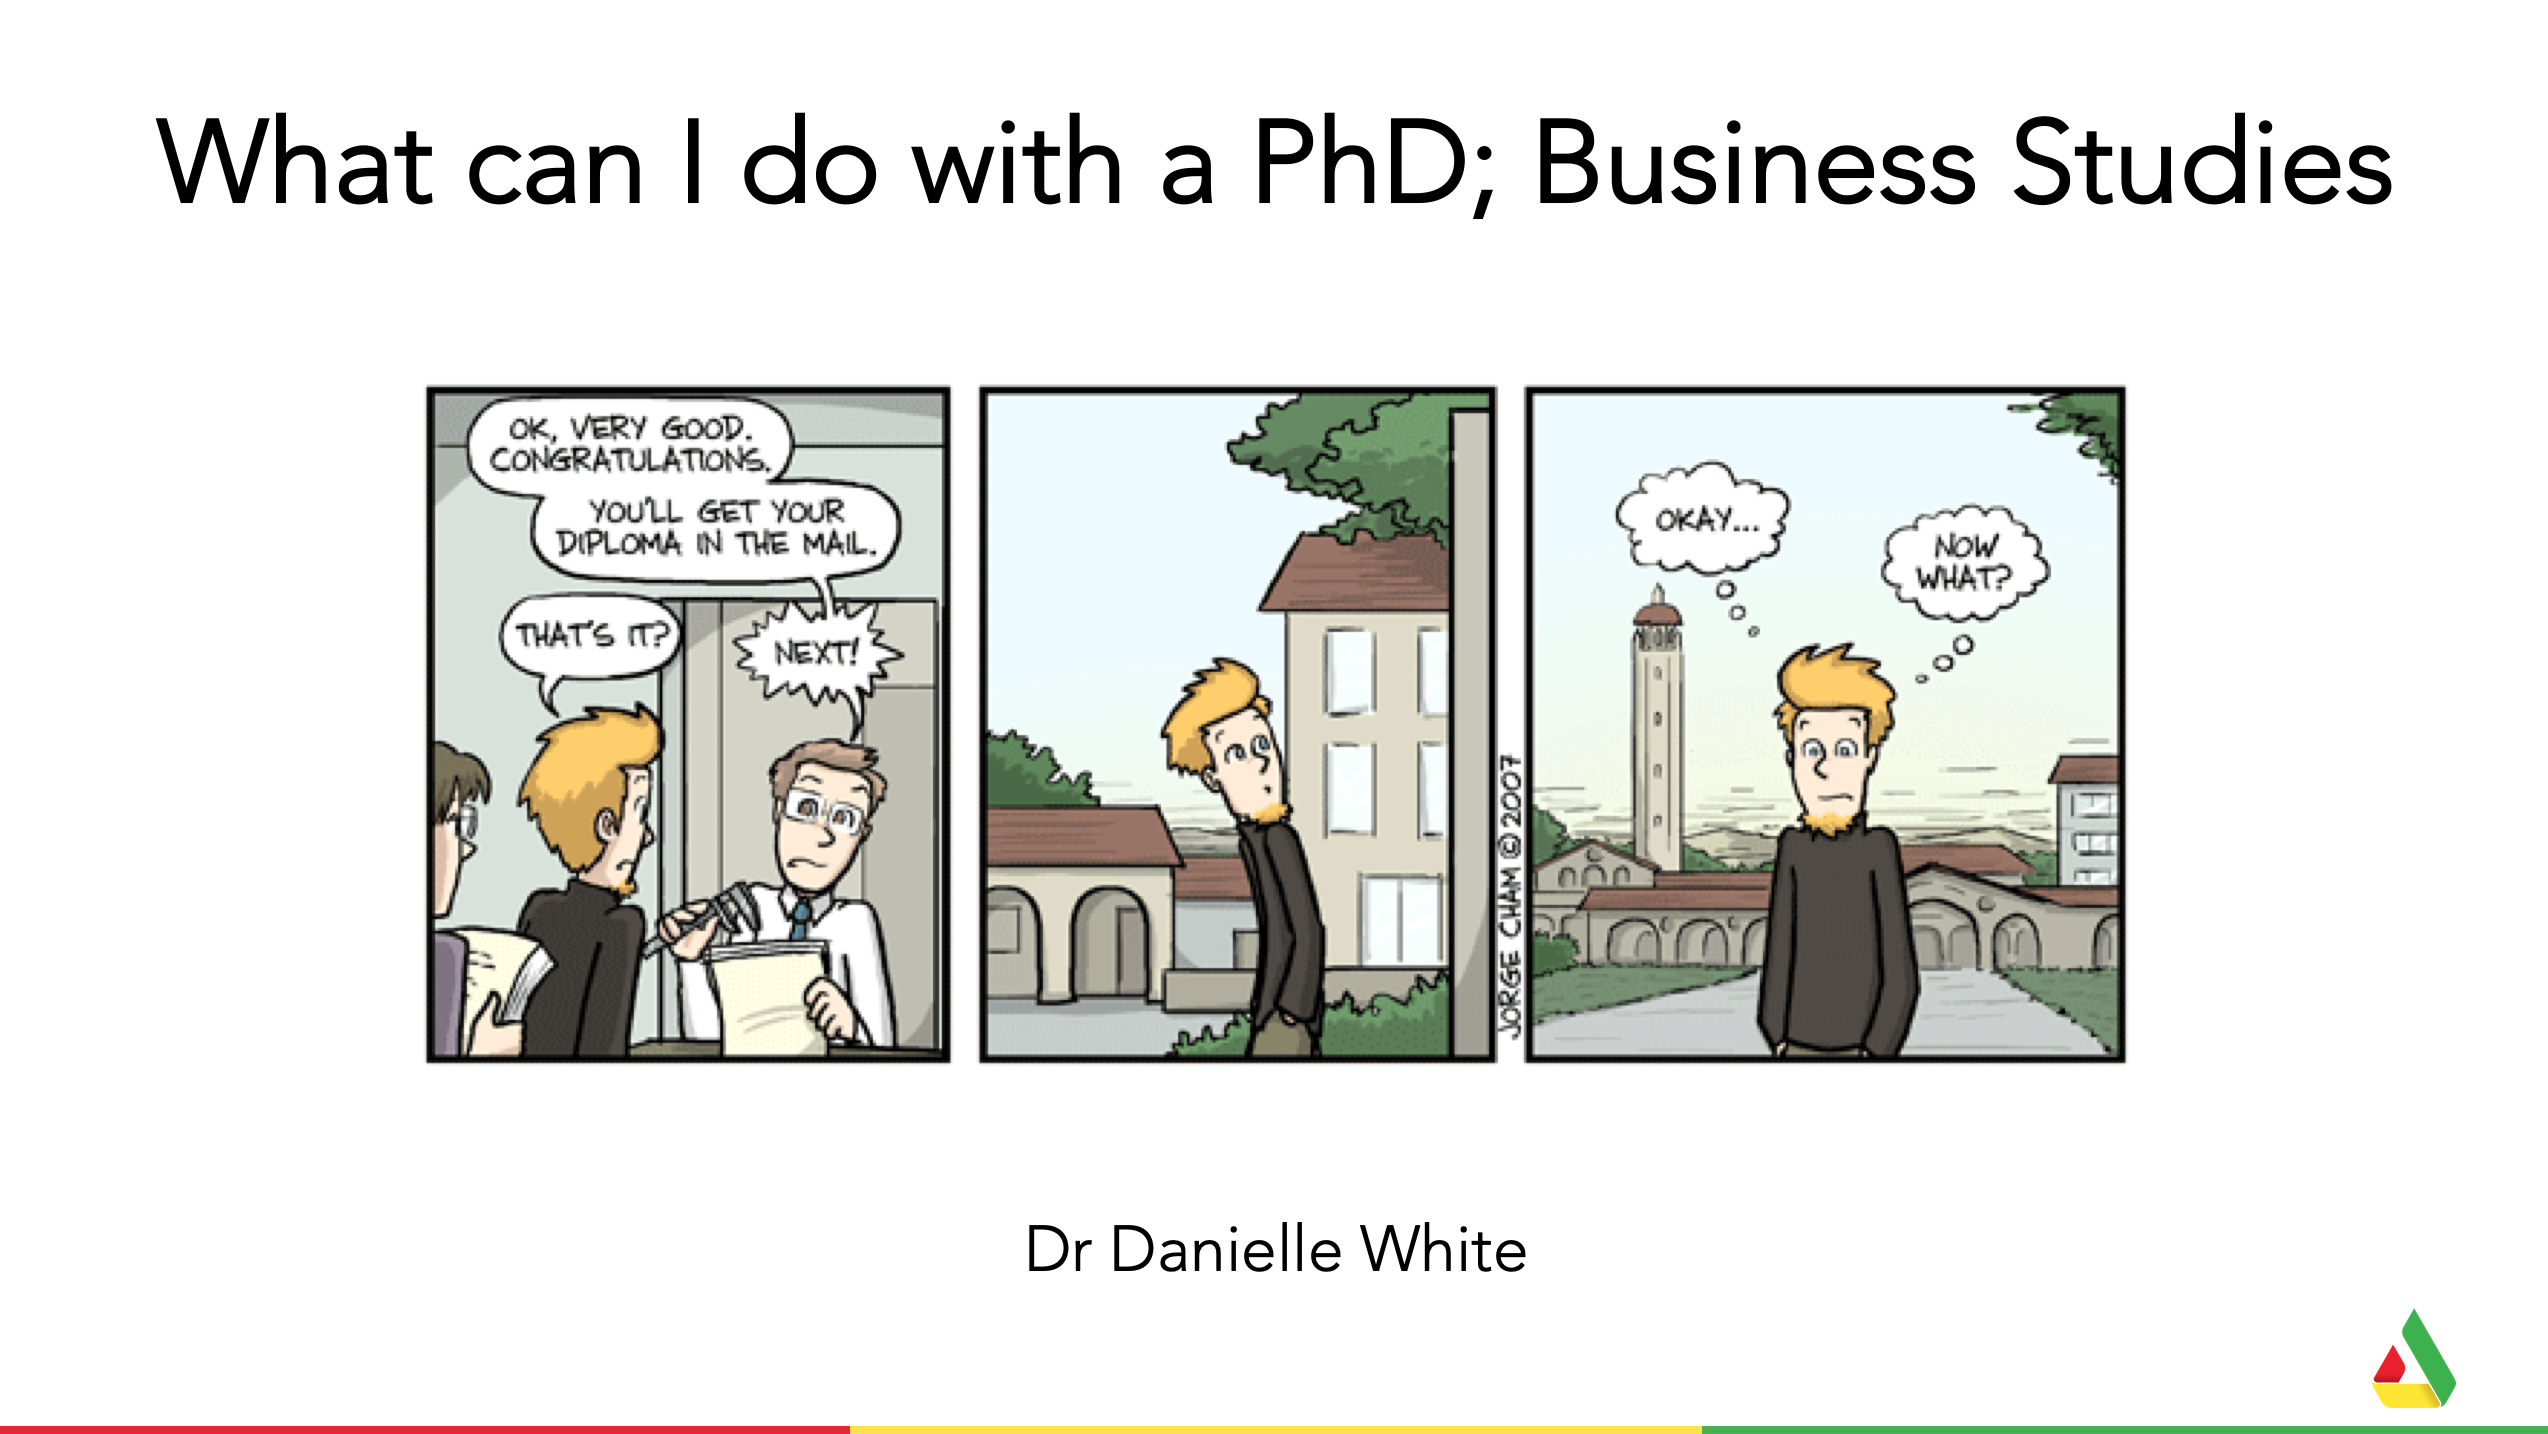 What can I do with a PhD